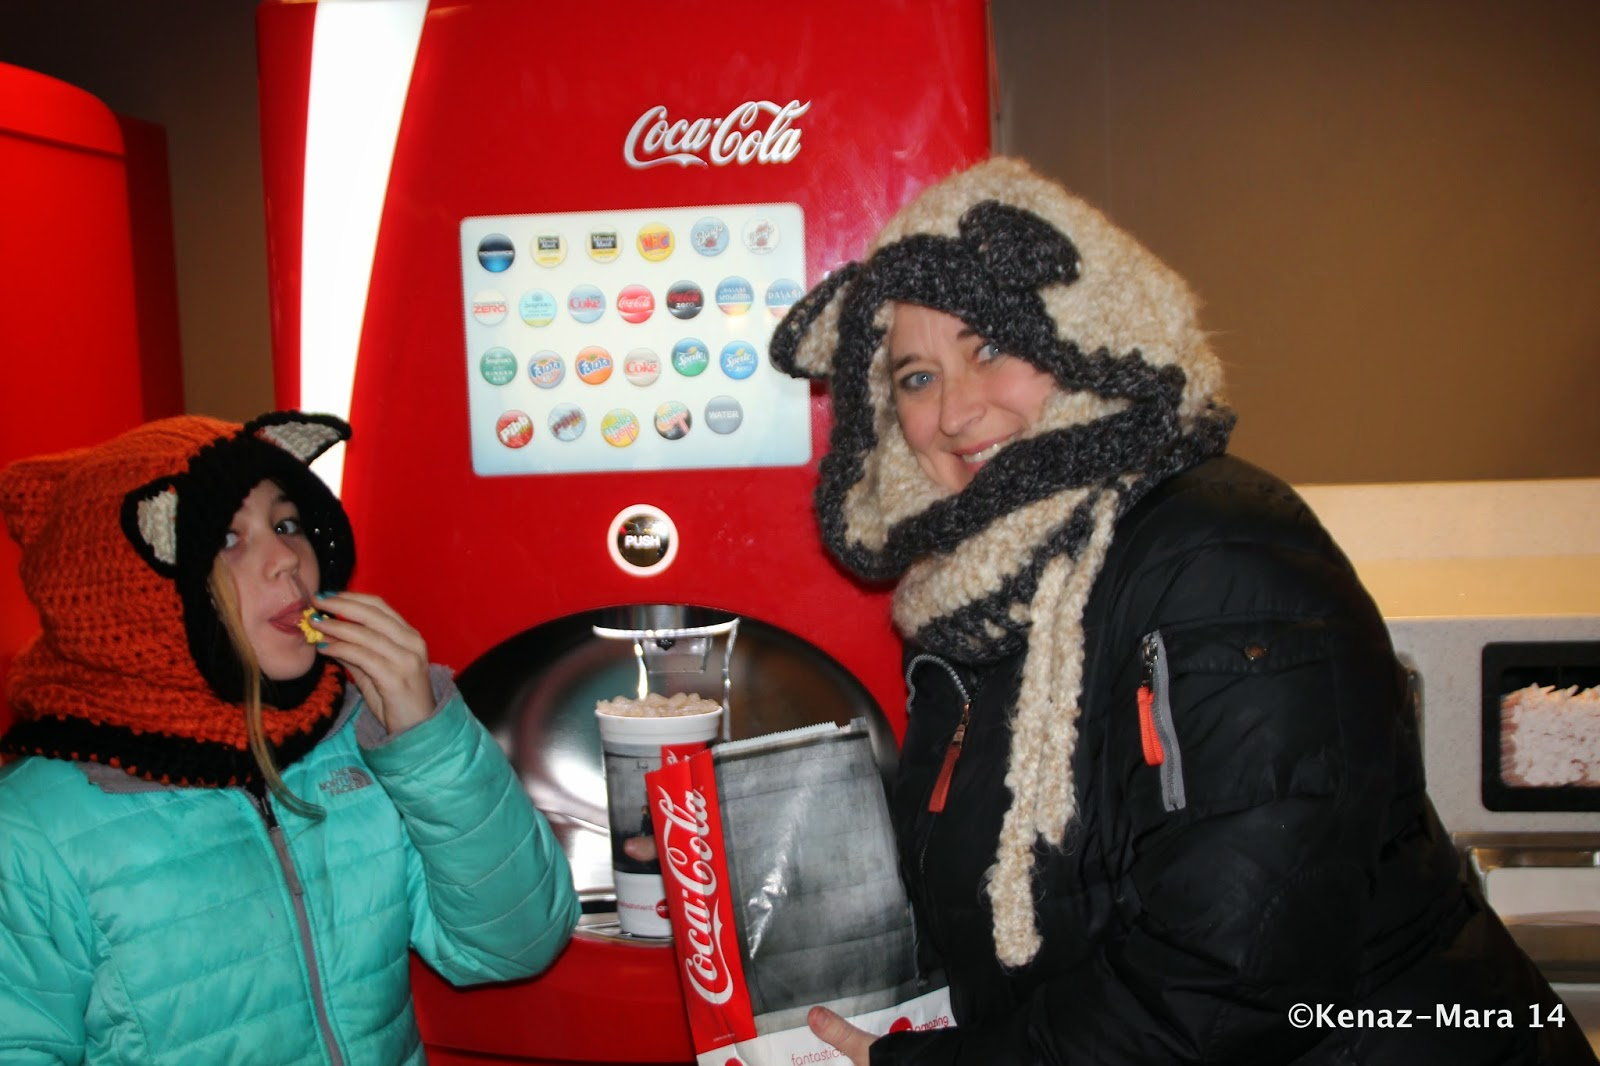 Because Theres Life After Birth Coca Cola Fueled Adventures At Amc